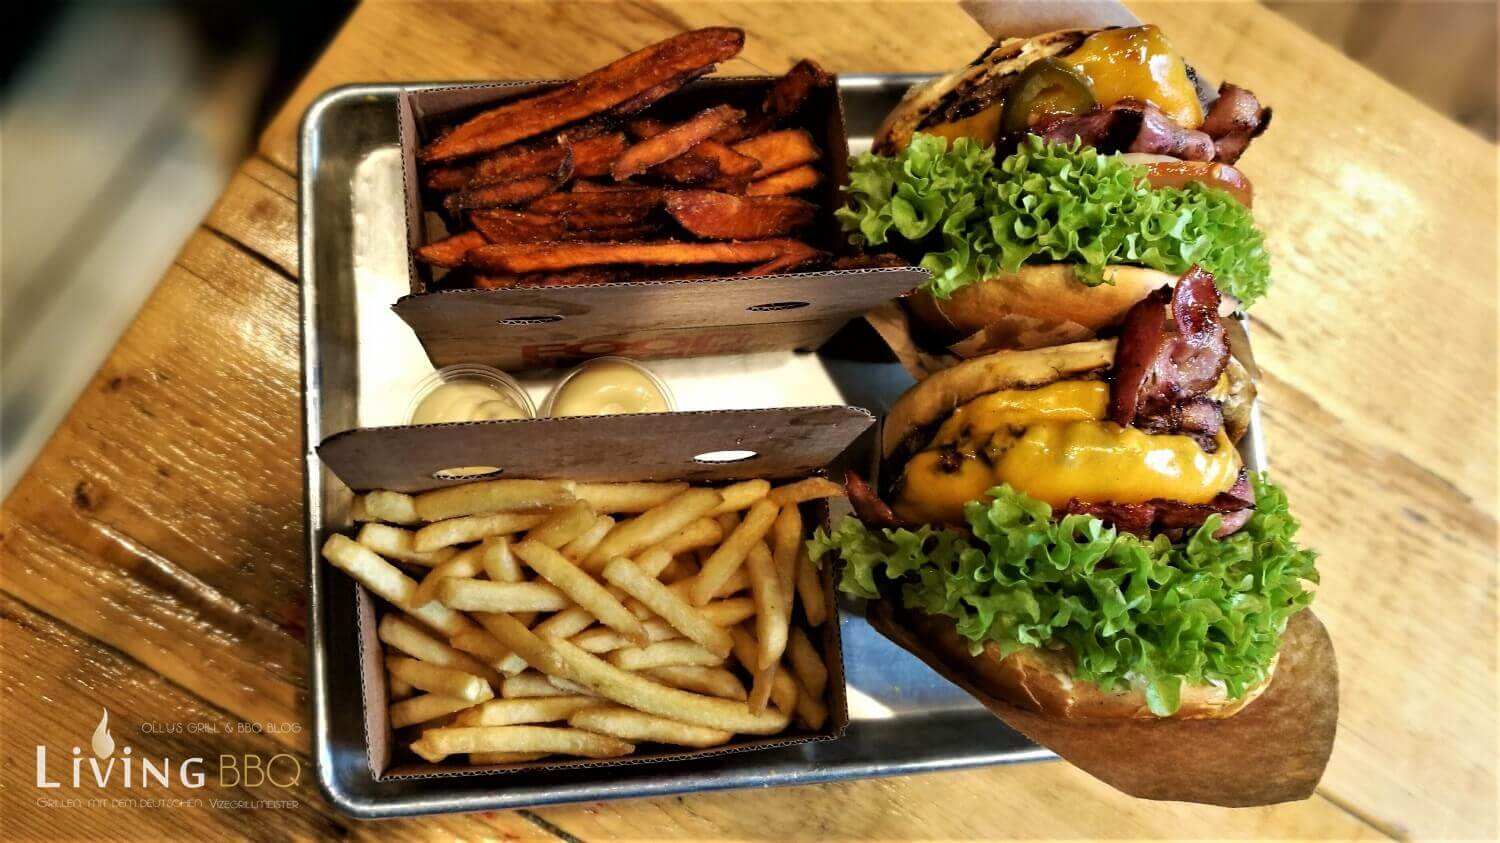 Bestellung Burgerladen Dortmund food brother_Burger im Food Brother Dortmund 2